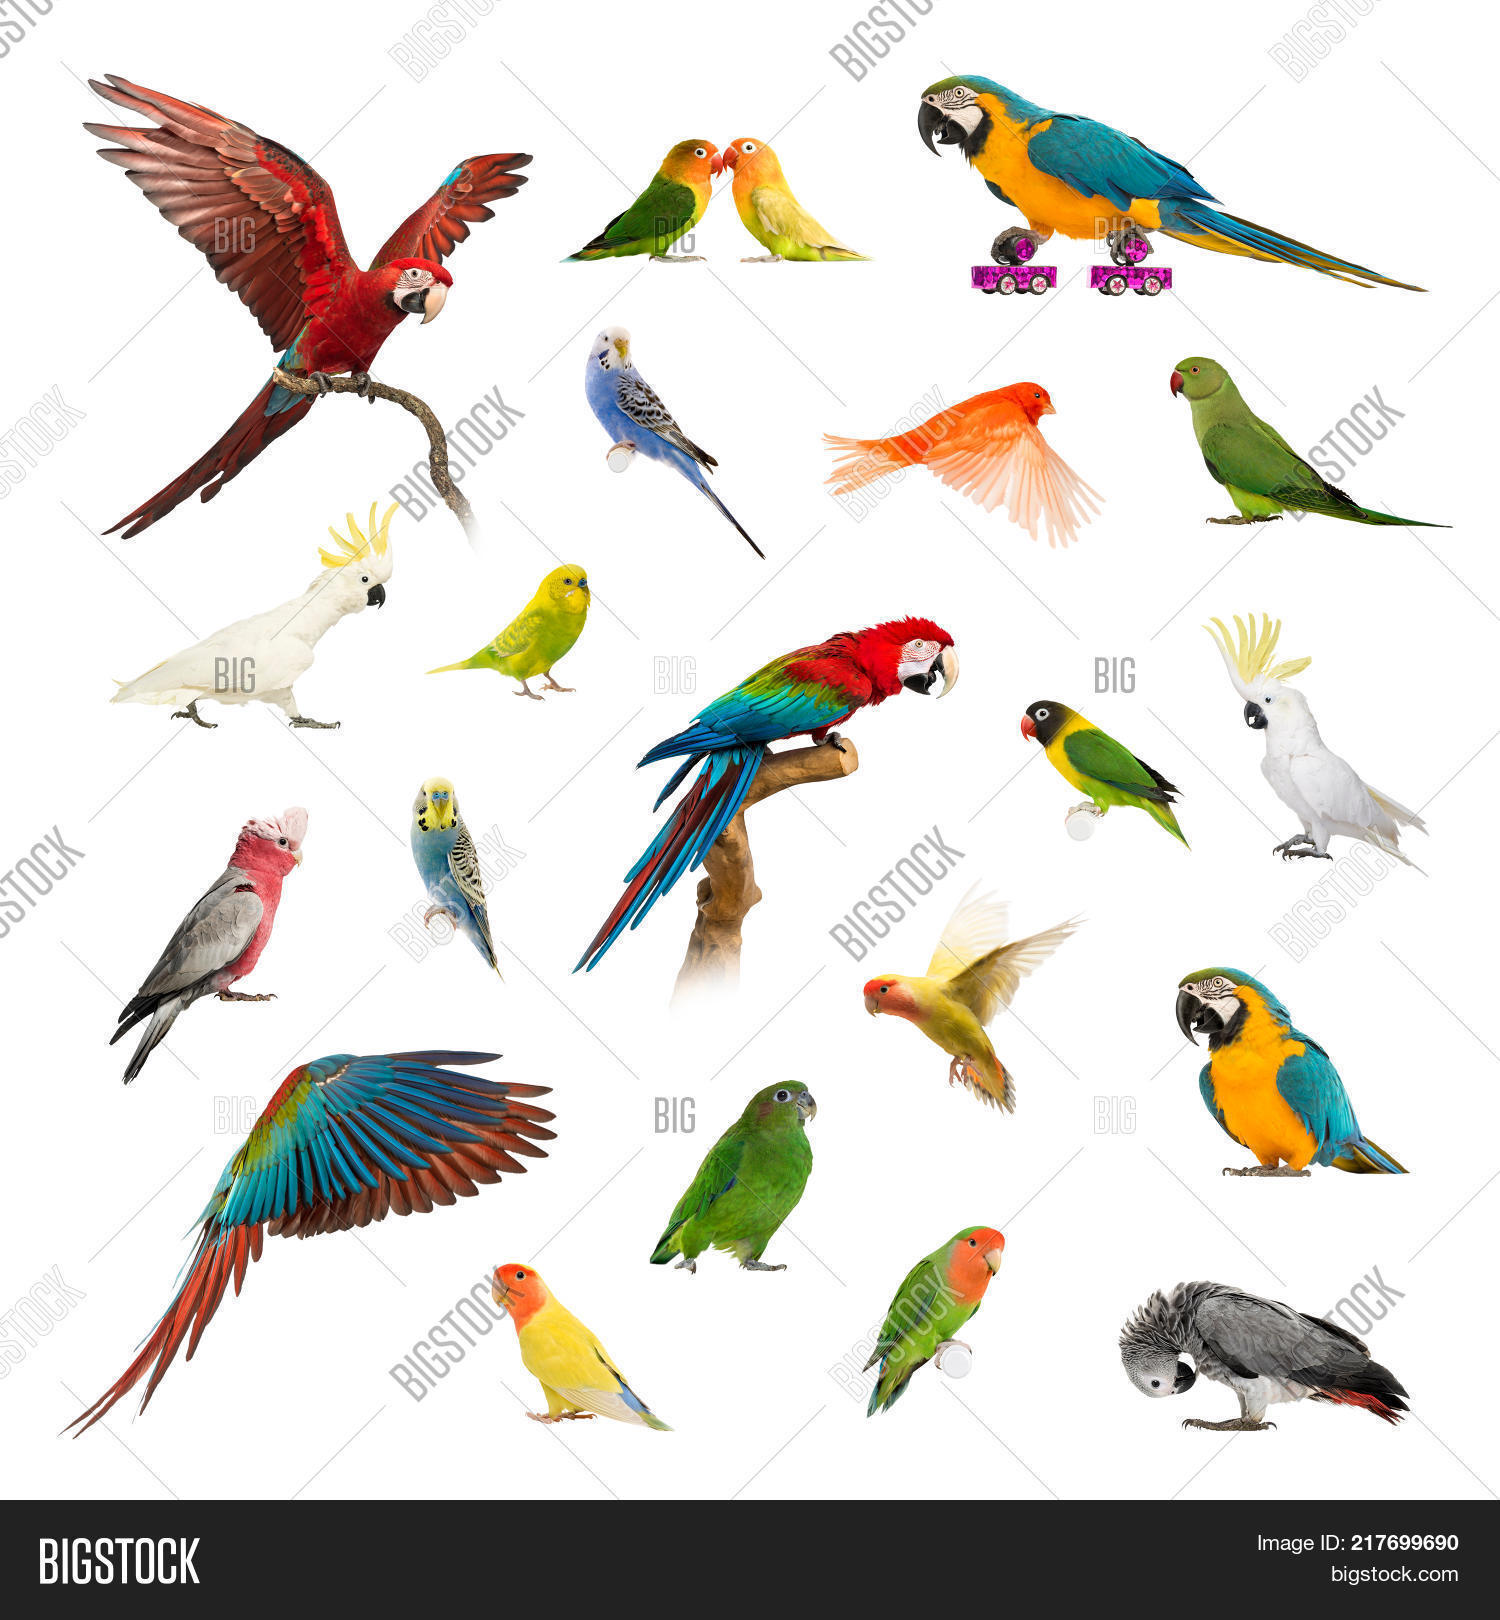 Large Collection Bird Image Photo Free Trial Bigstock